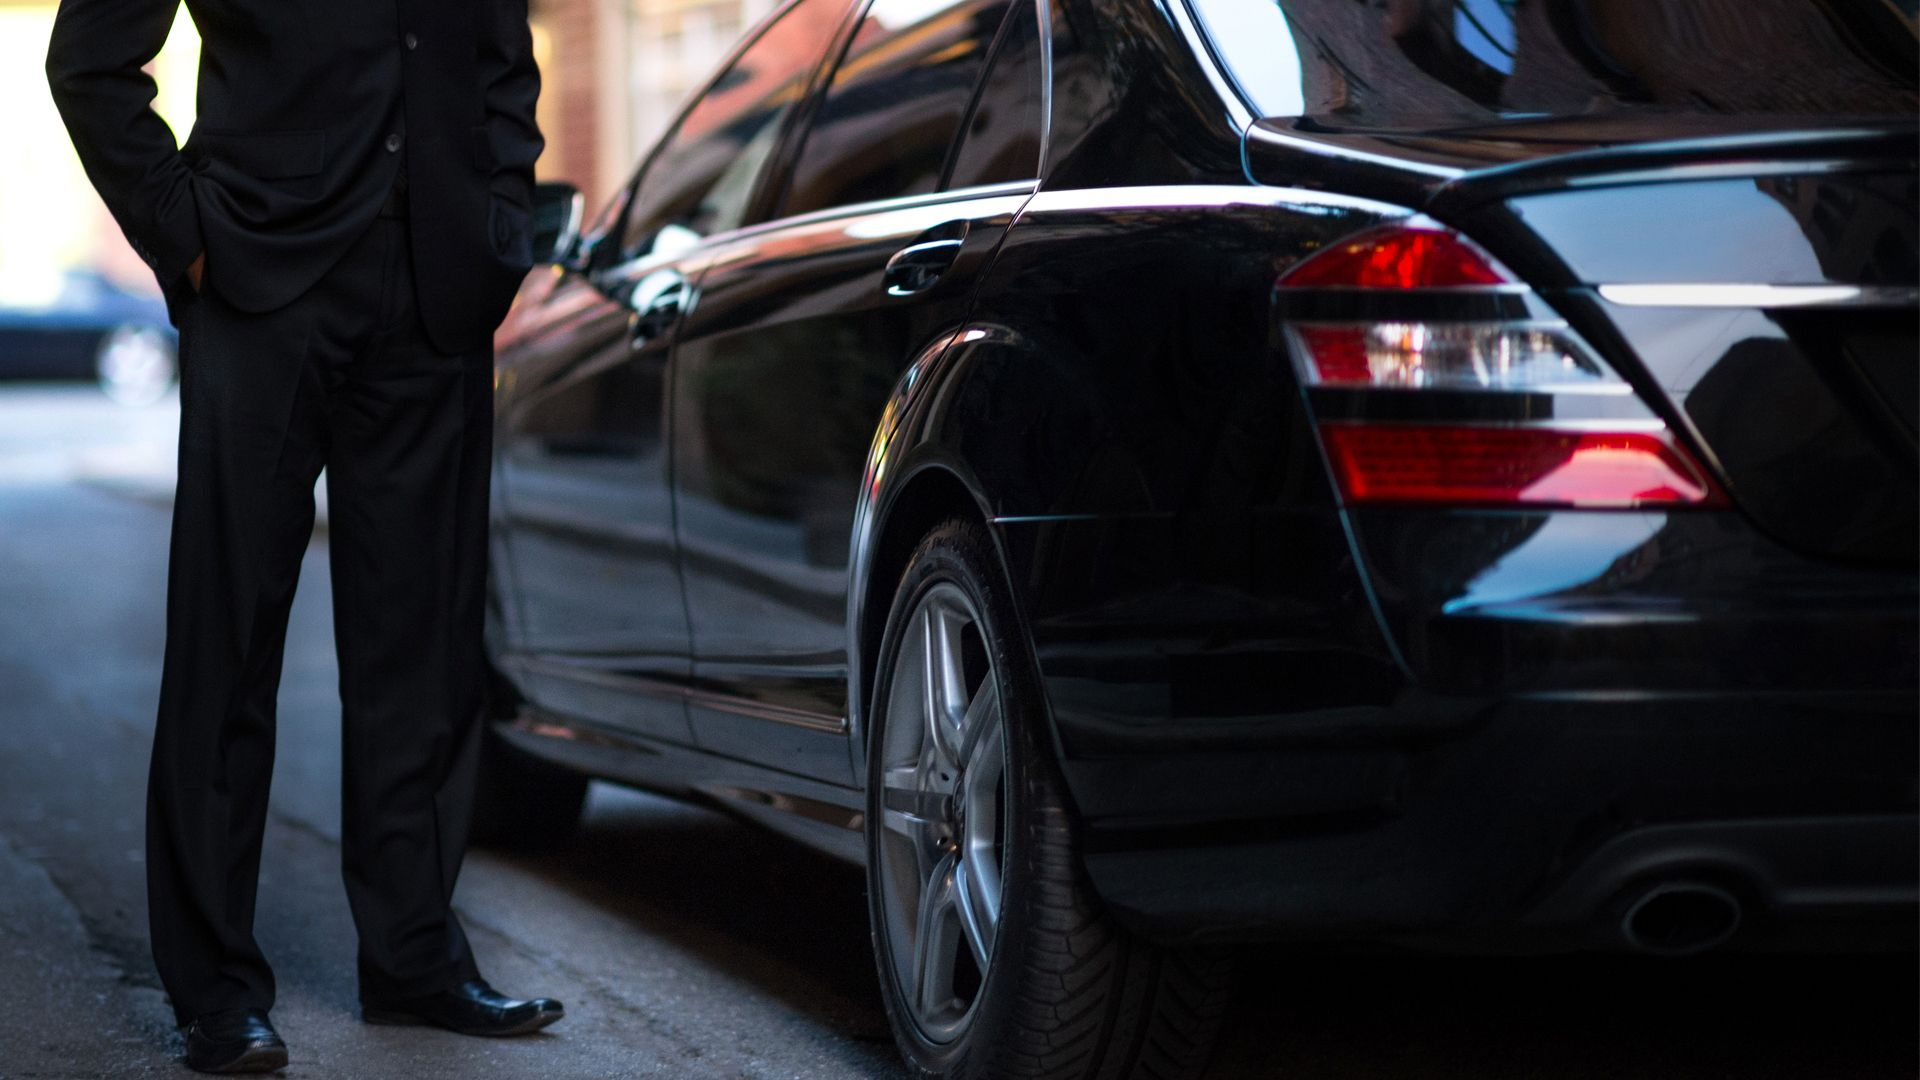 Hire the best Car Service in Los Angeles for comfortable